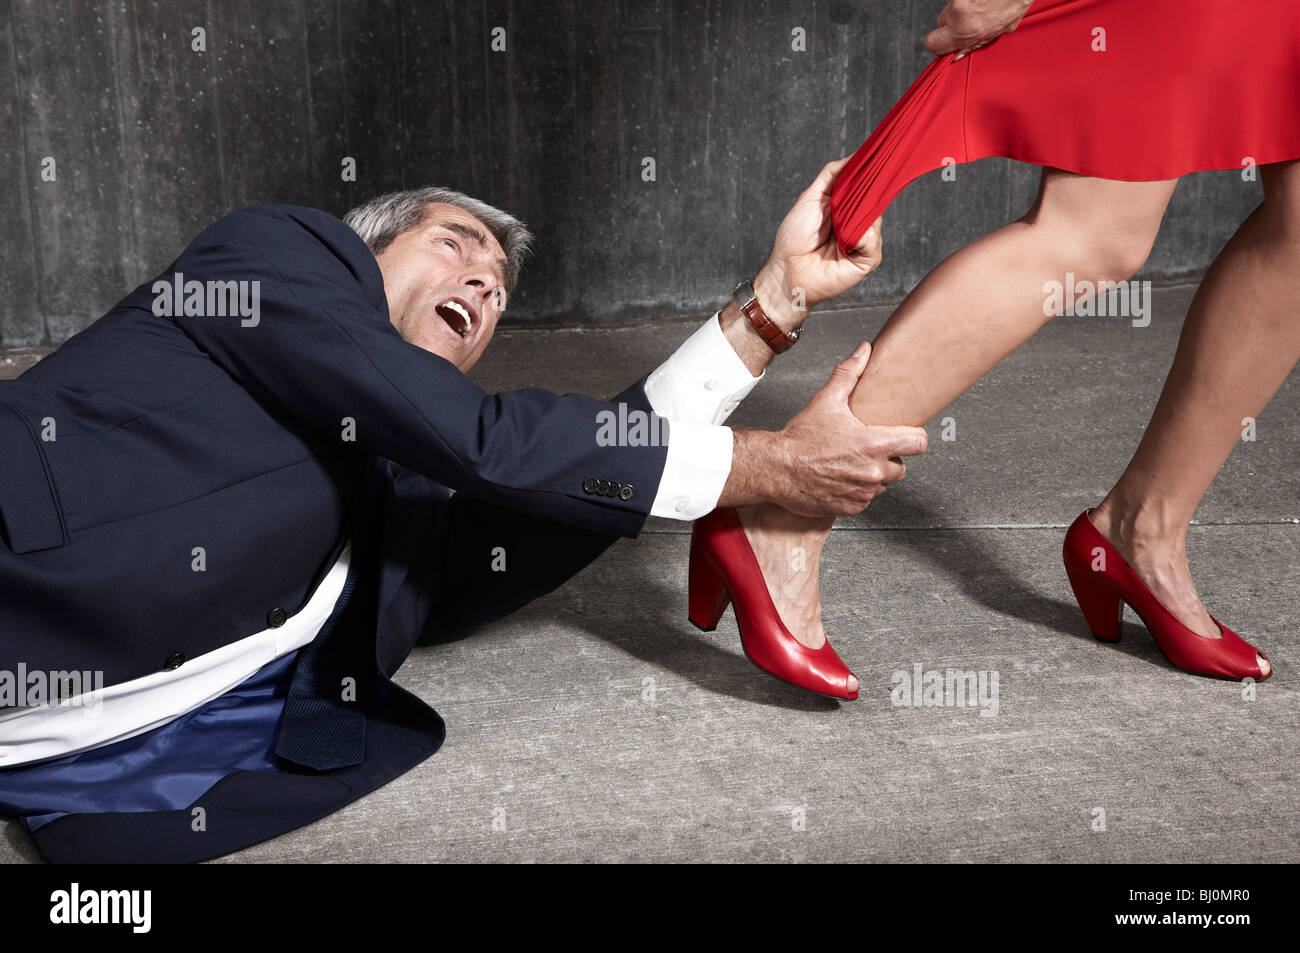 desperate man lying on floor trying to hold woman - Stock Image